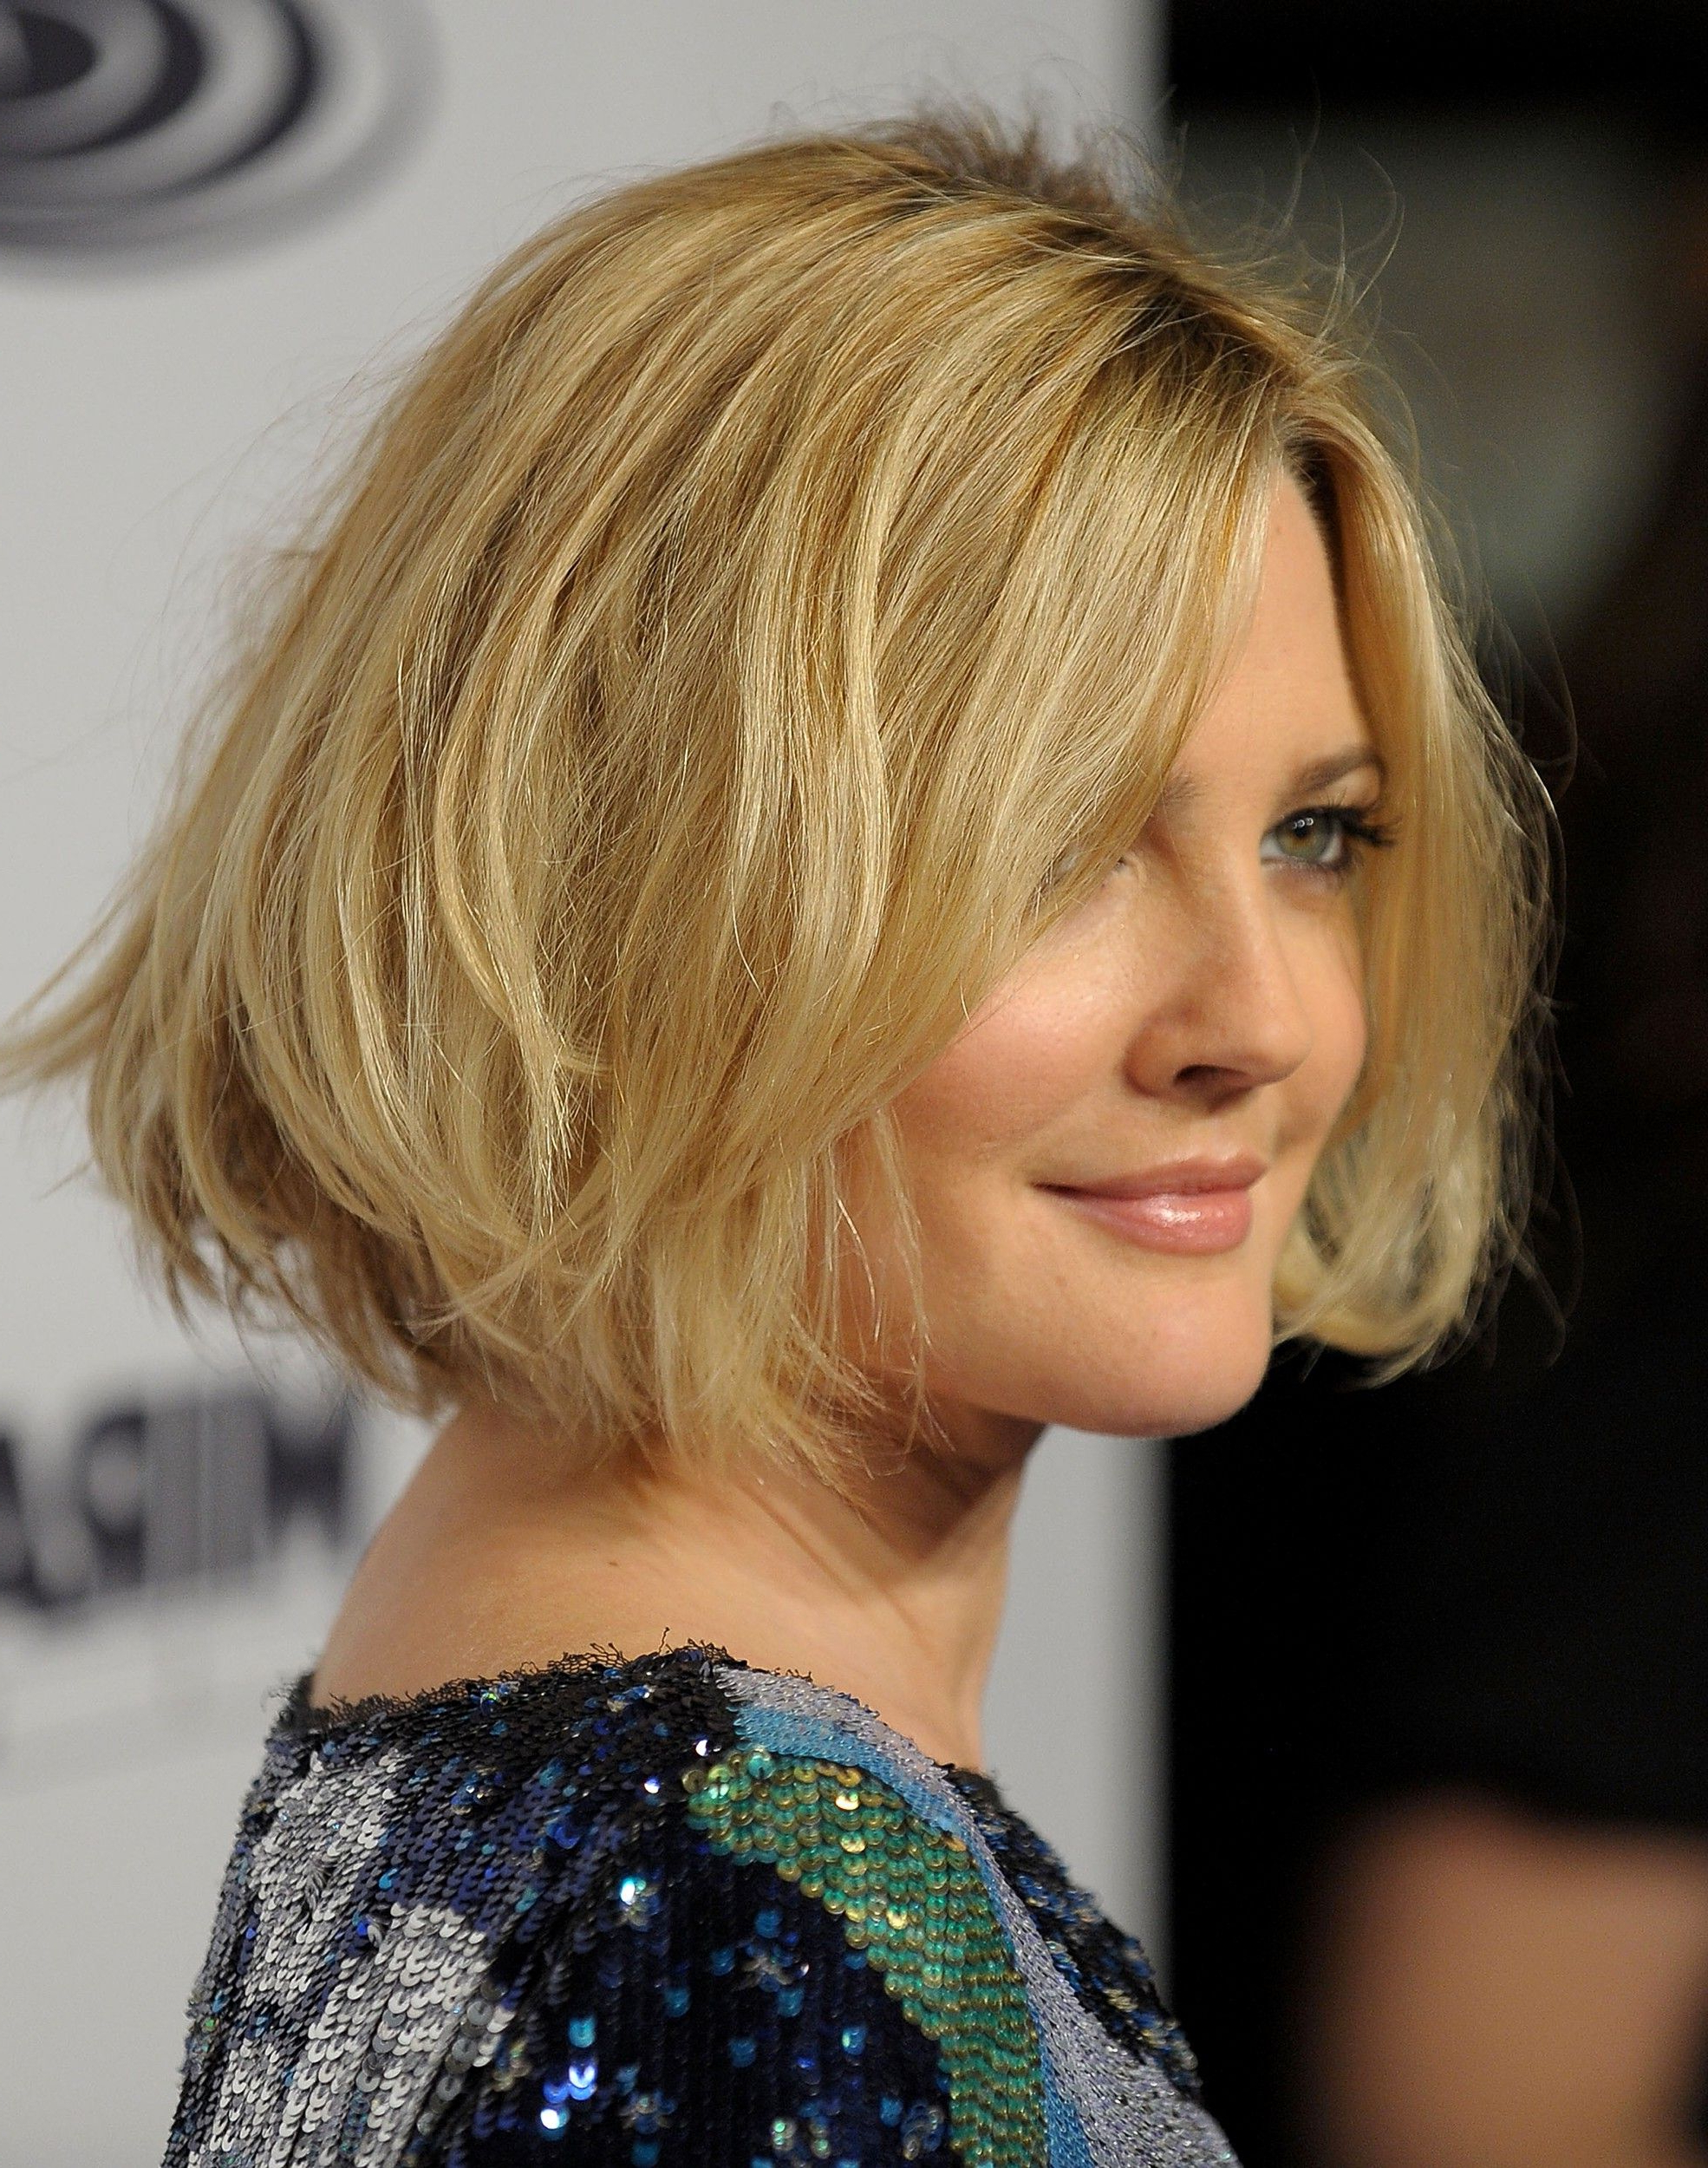 Drew Barrymore Short Hairstyle Regarding Popular Drew Barrymore Medium Hairstyles (View 9 of 20)